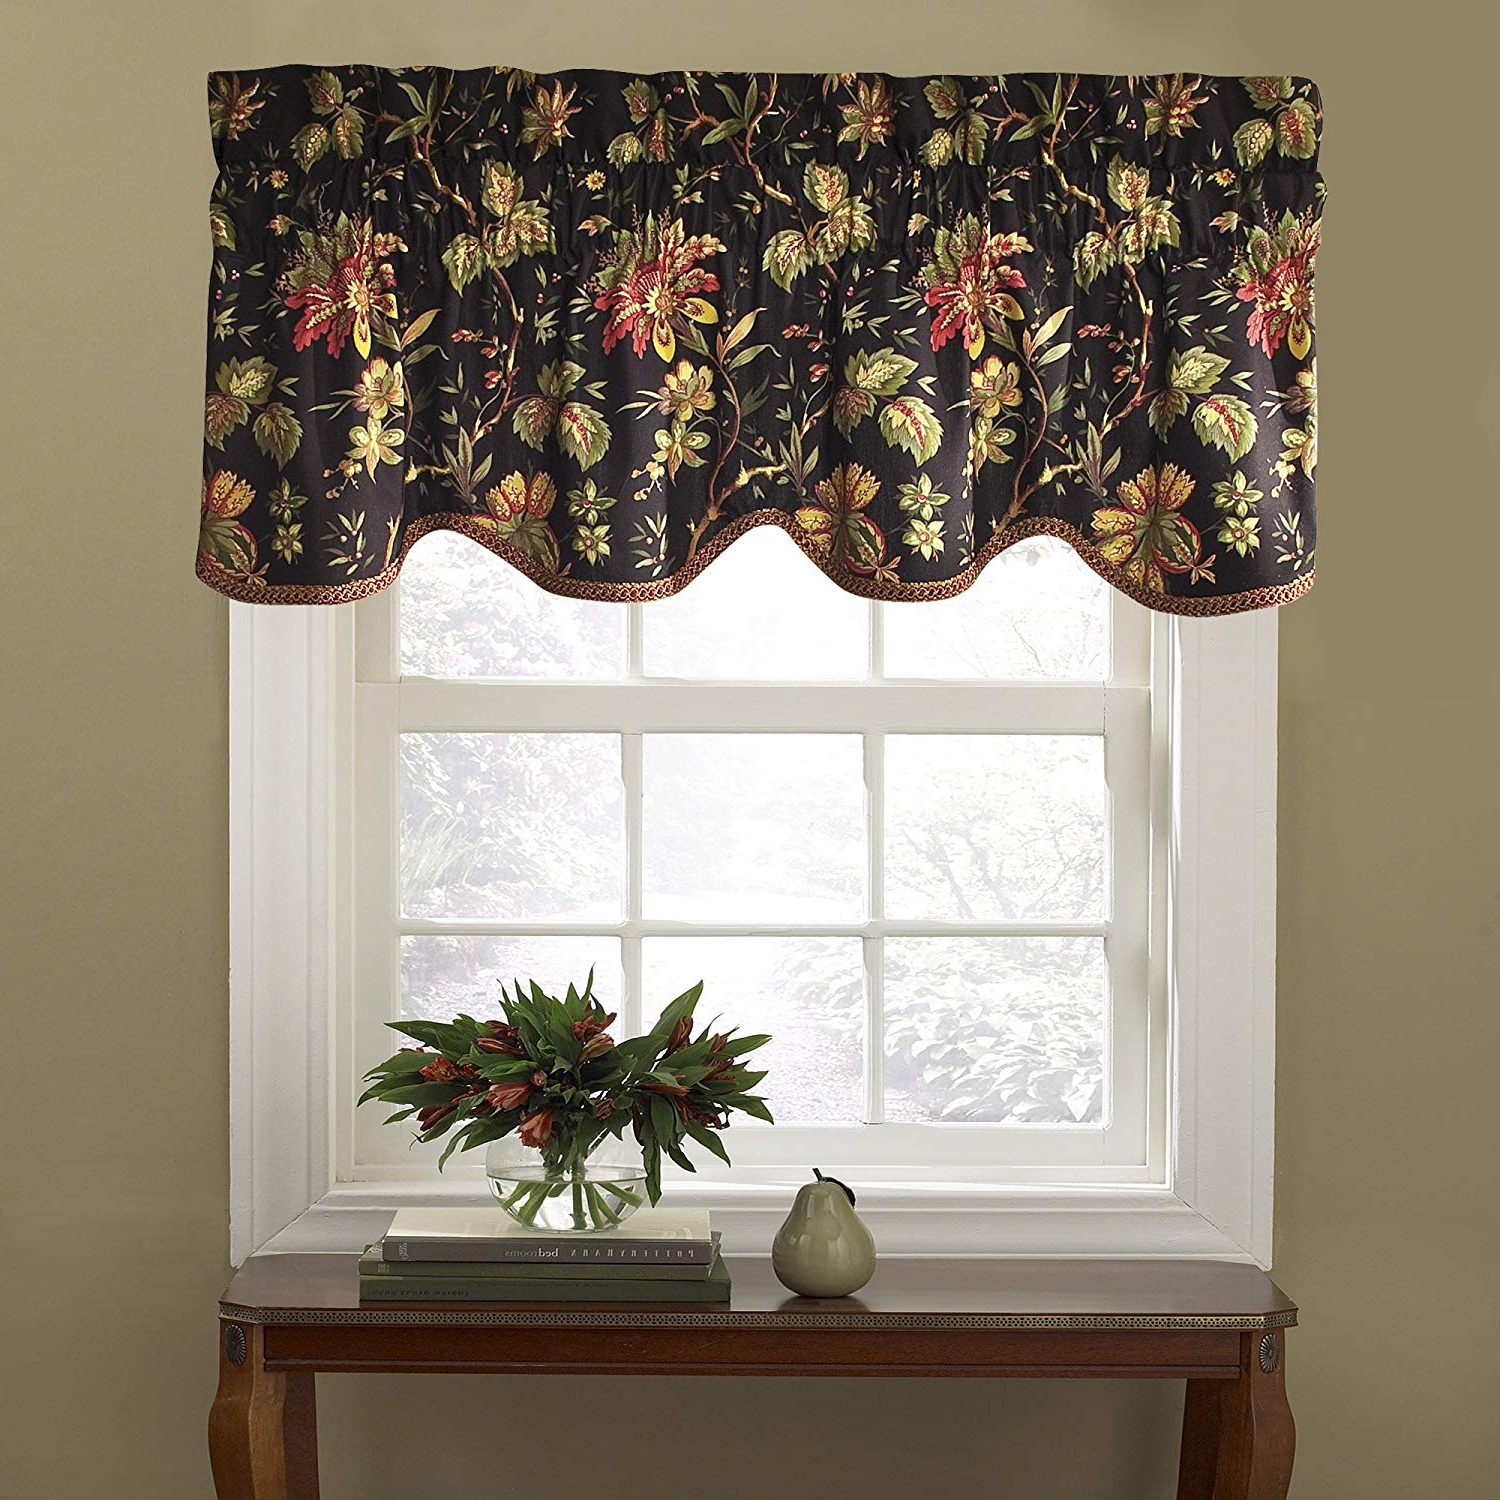 "Most Recent Waverly Valances For Windows – Felicite 50"" X 15"" Short Curtain Valance Small Window Curtains Bathroom, Living Room And Kitchens, Noir In Waverly Felicite Curtain Tiers (View 3 of 20)"